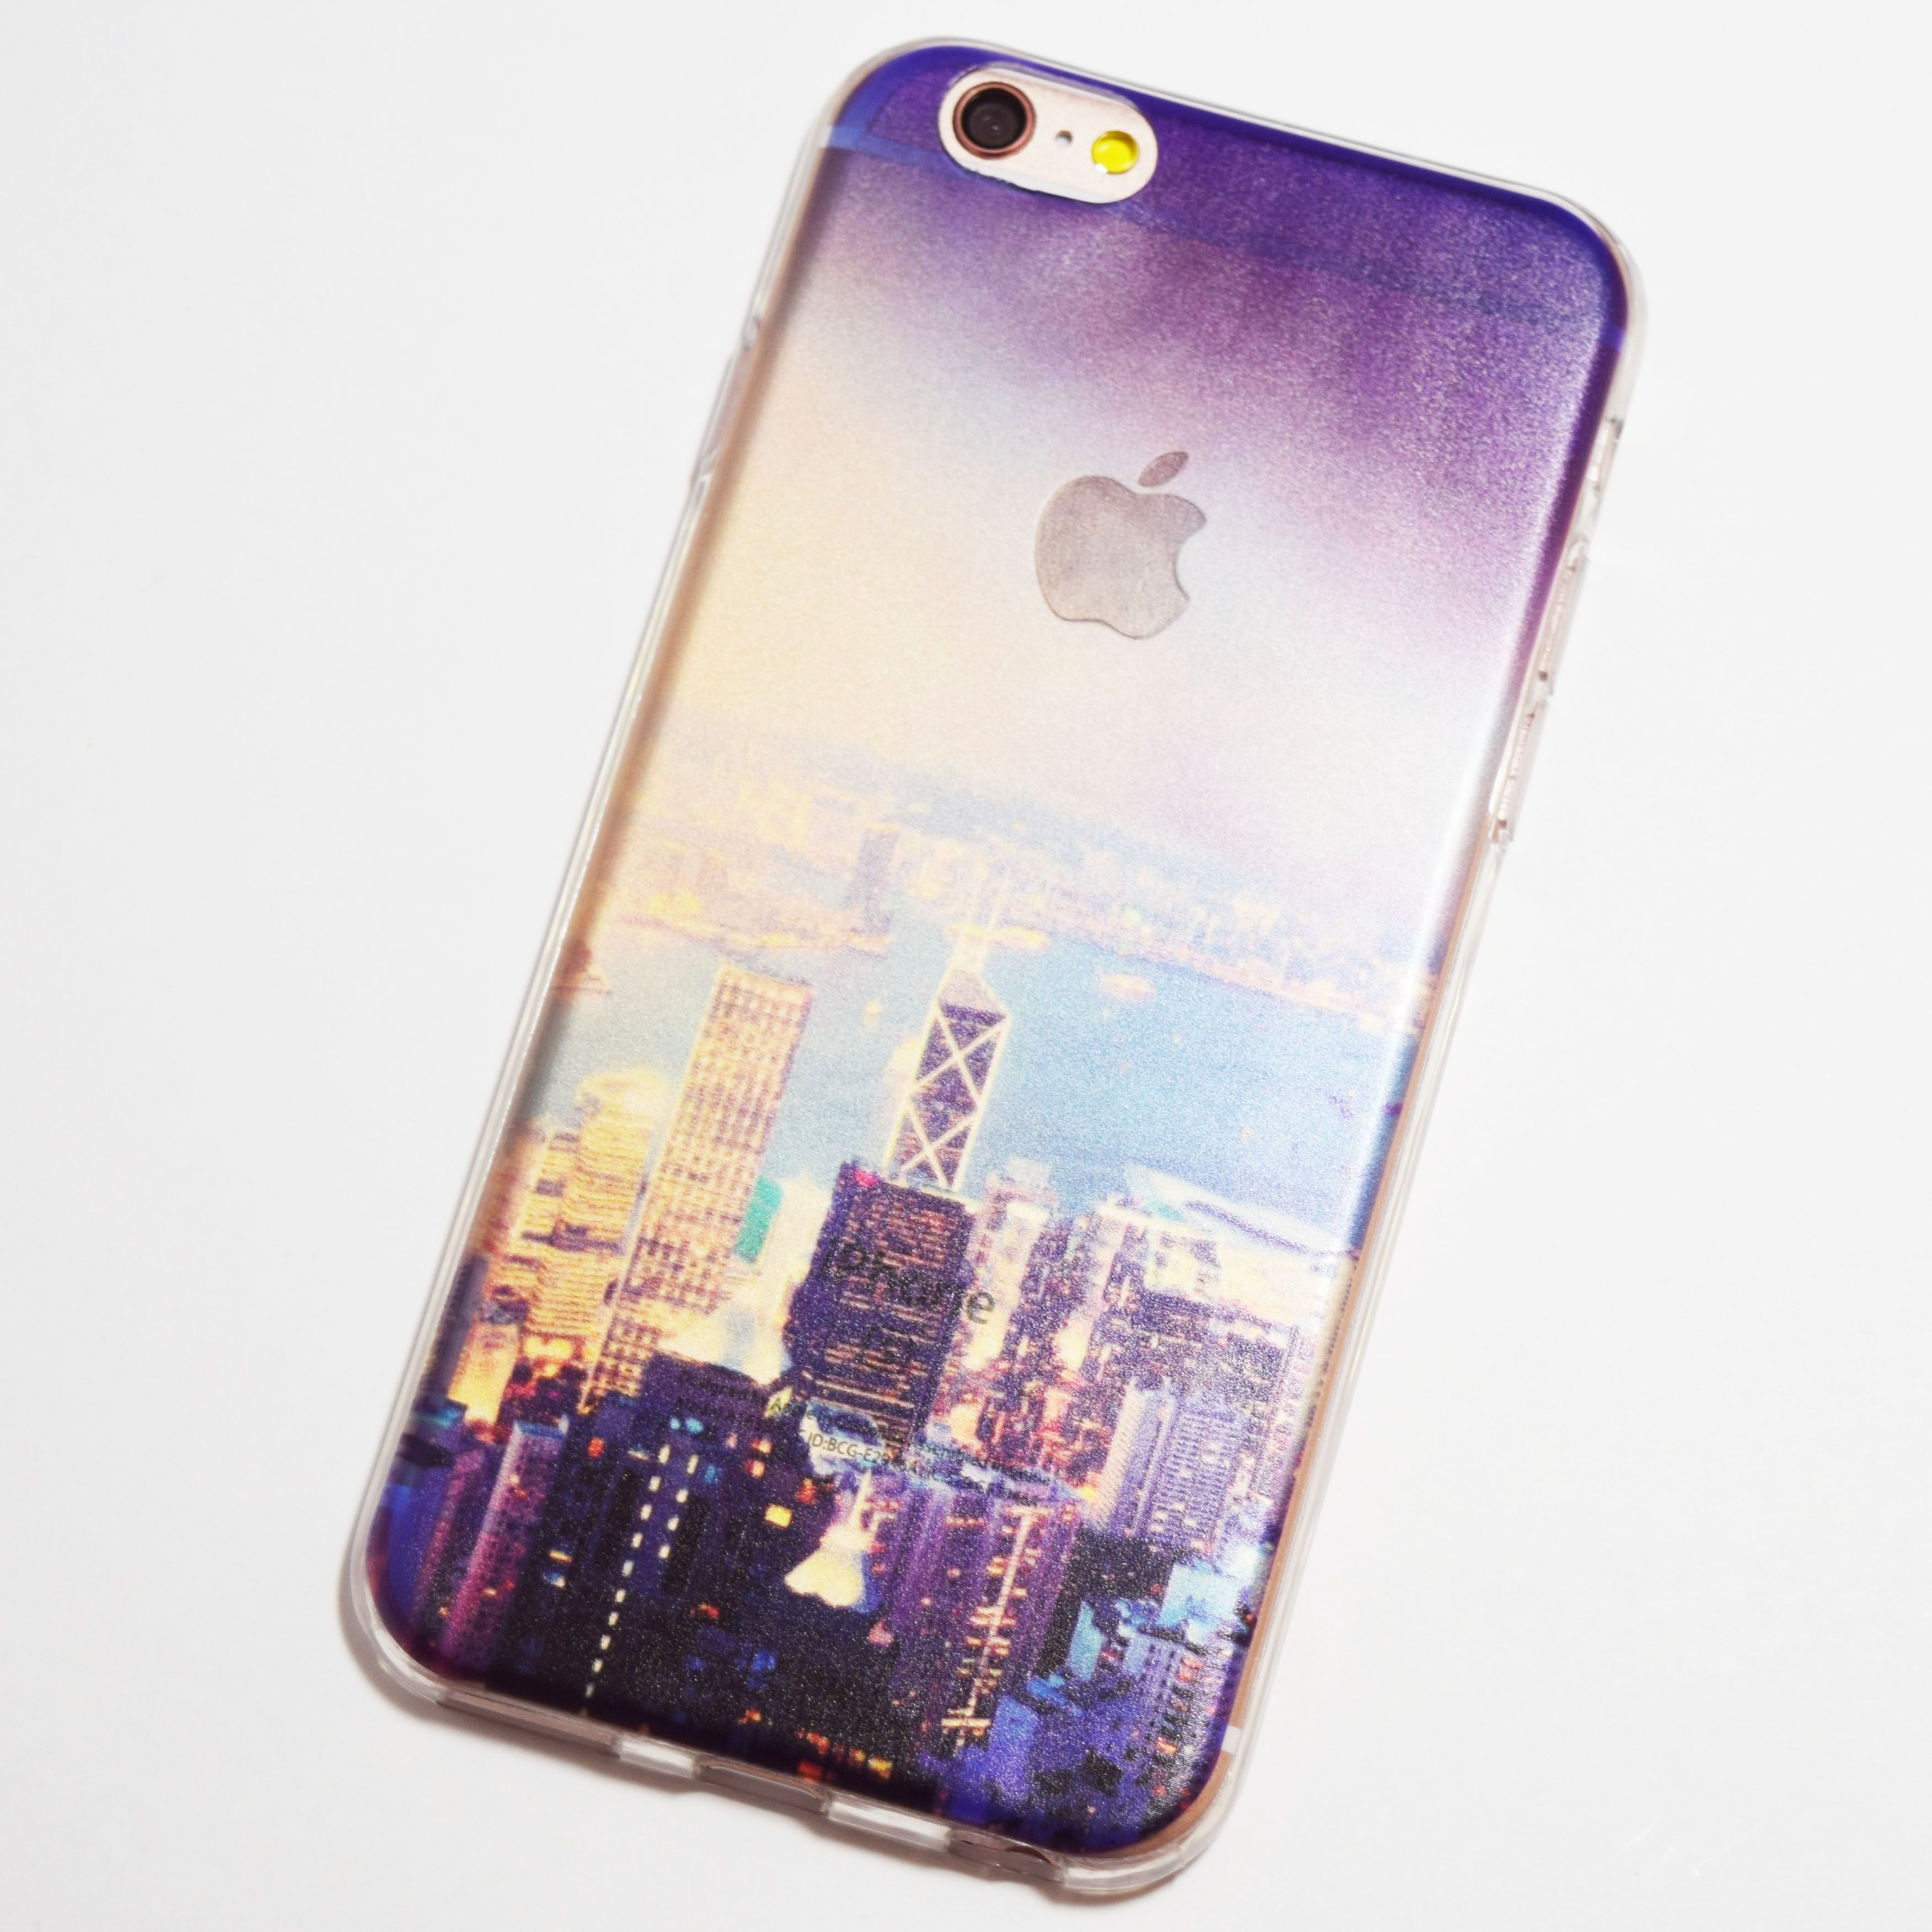 Hong Kong Skyline Bank of China Tower iPhone 6 iPhone 6S Soft Case